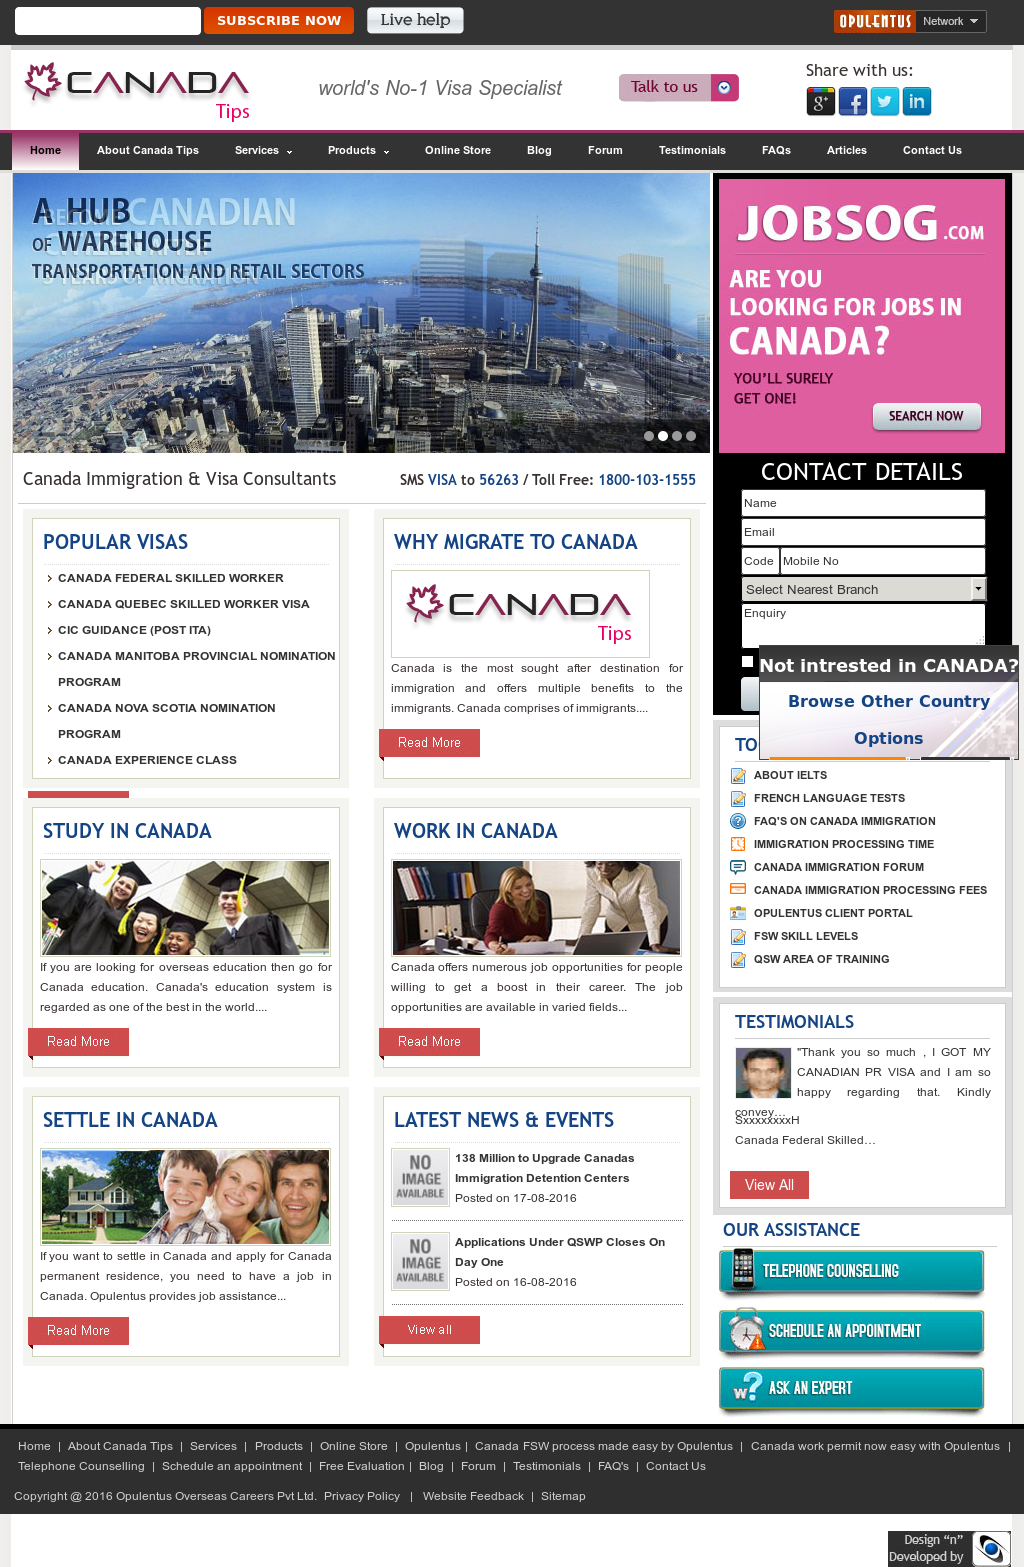 Canada Tips Competitors, Revenue and Employees - Owler Company Profile